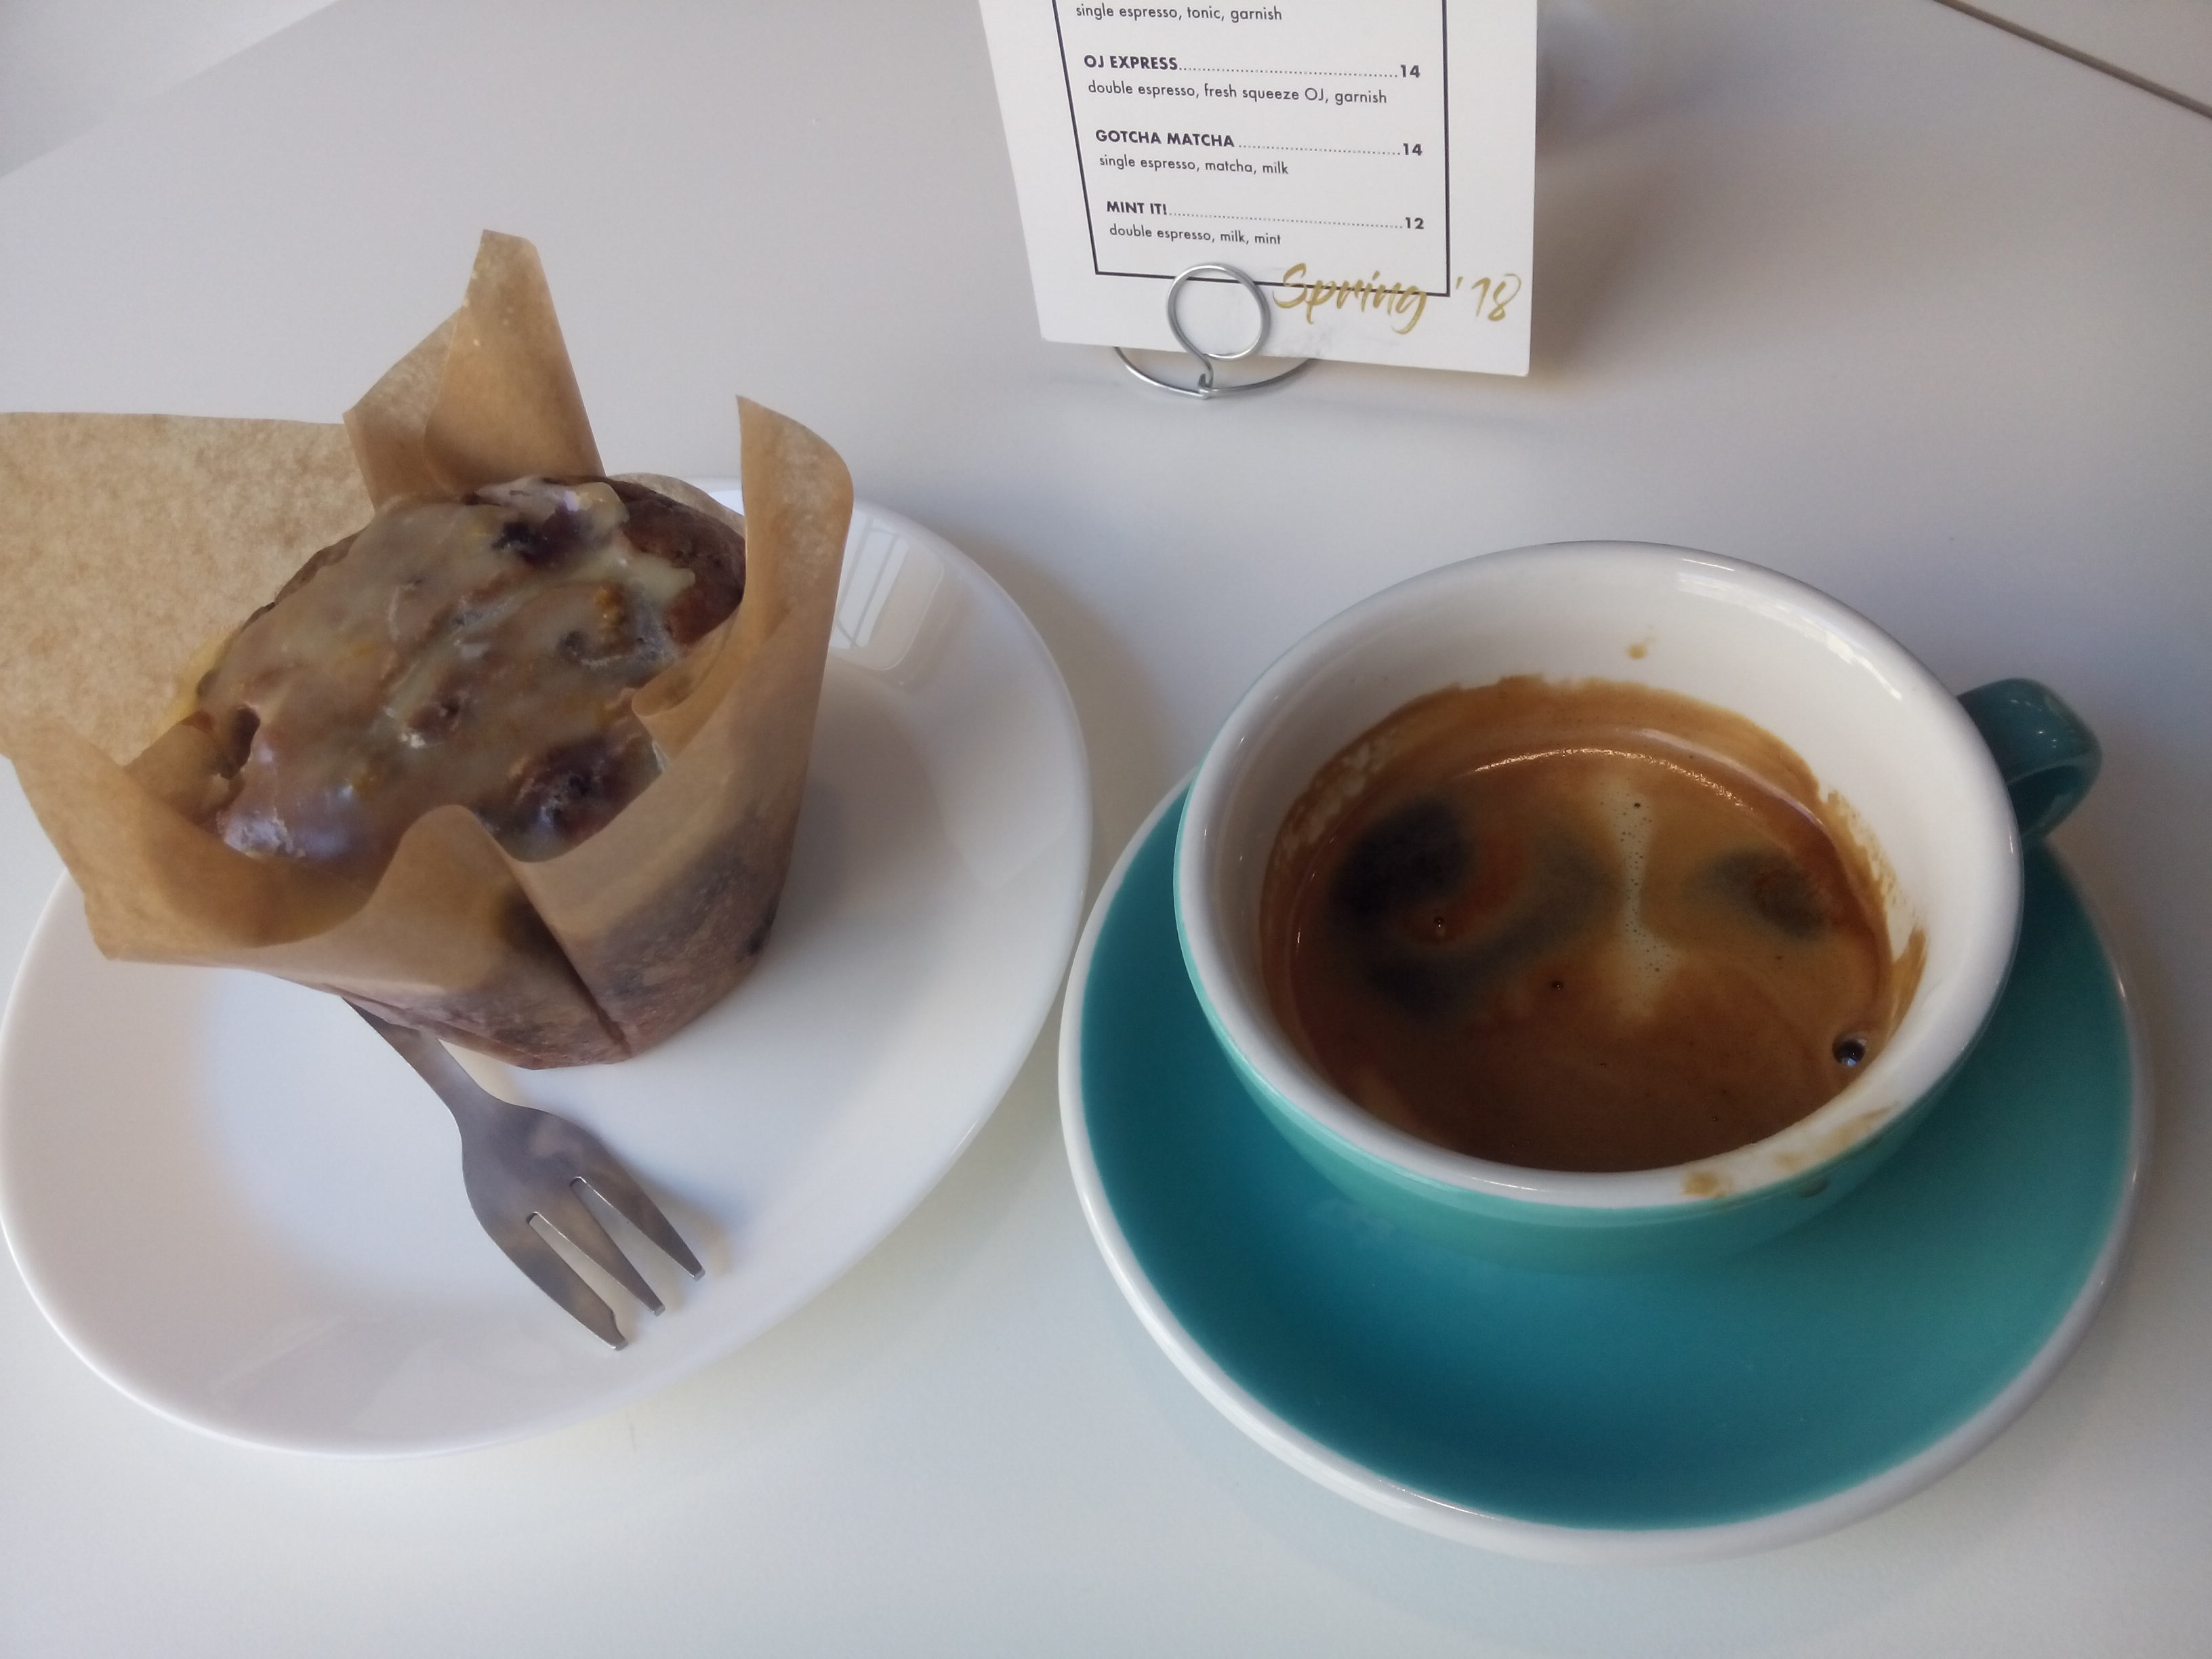 A plate with a muffin in brown paper next to a double espresso in a blue and white cup